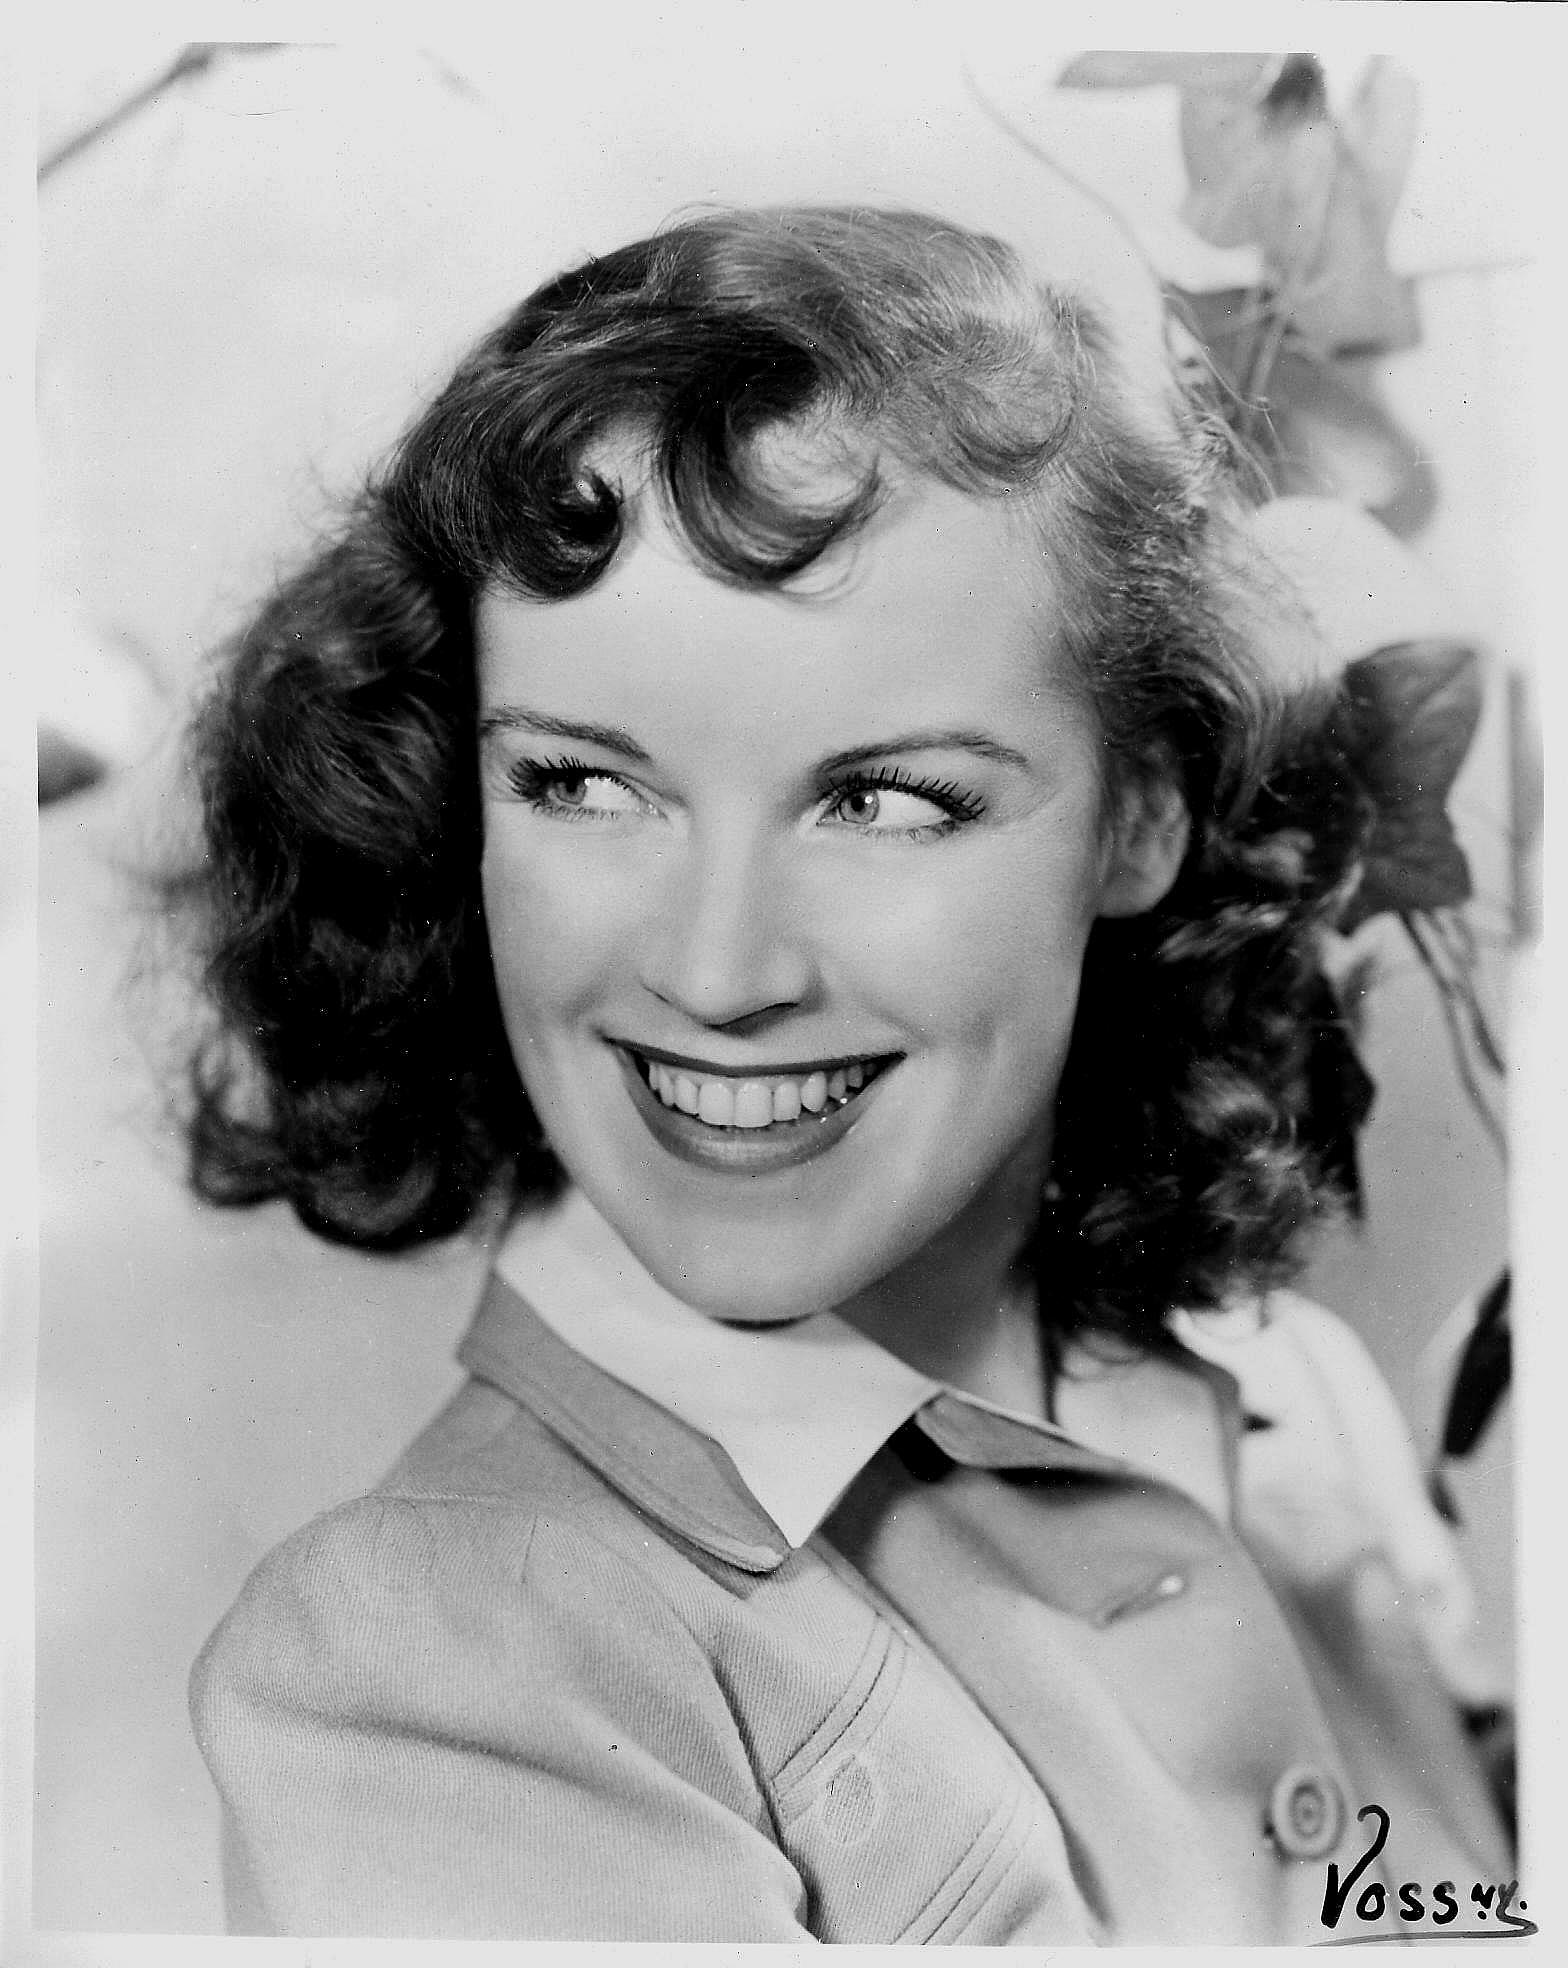 Jane was my cousin.  She was in London after the WW2 entertaining troops, on stage with Sylvia Sidney and Groucho Marx (toured with him).  Worked for